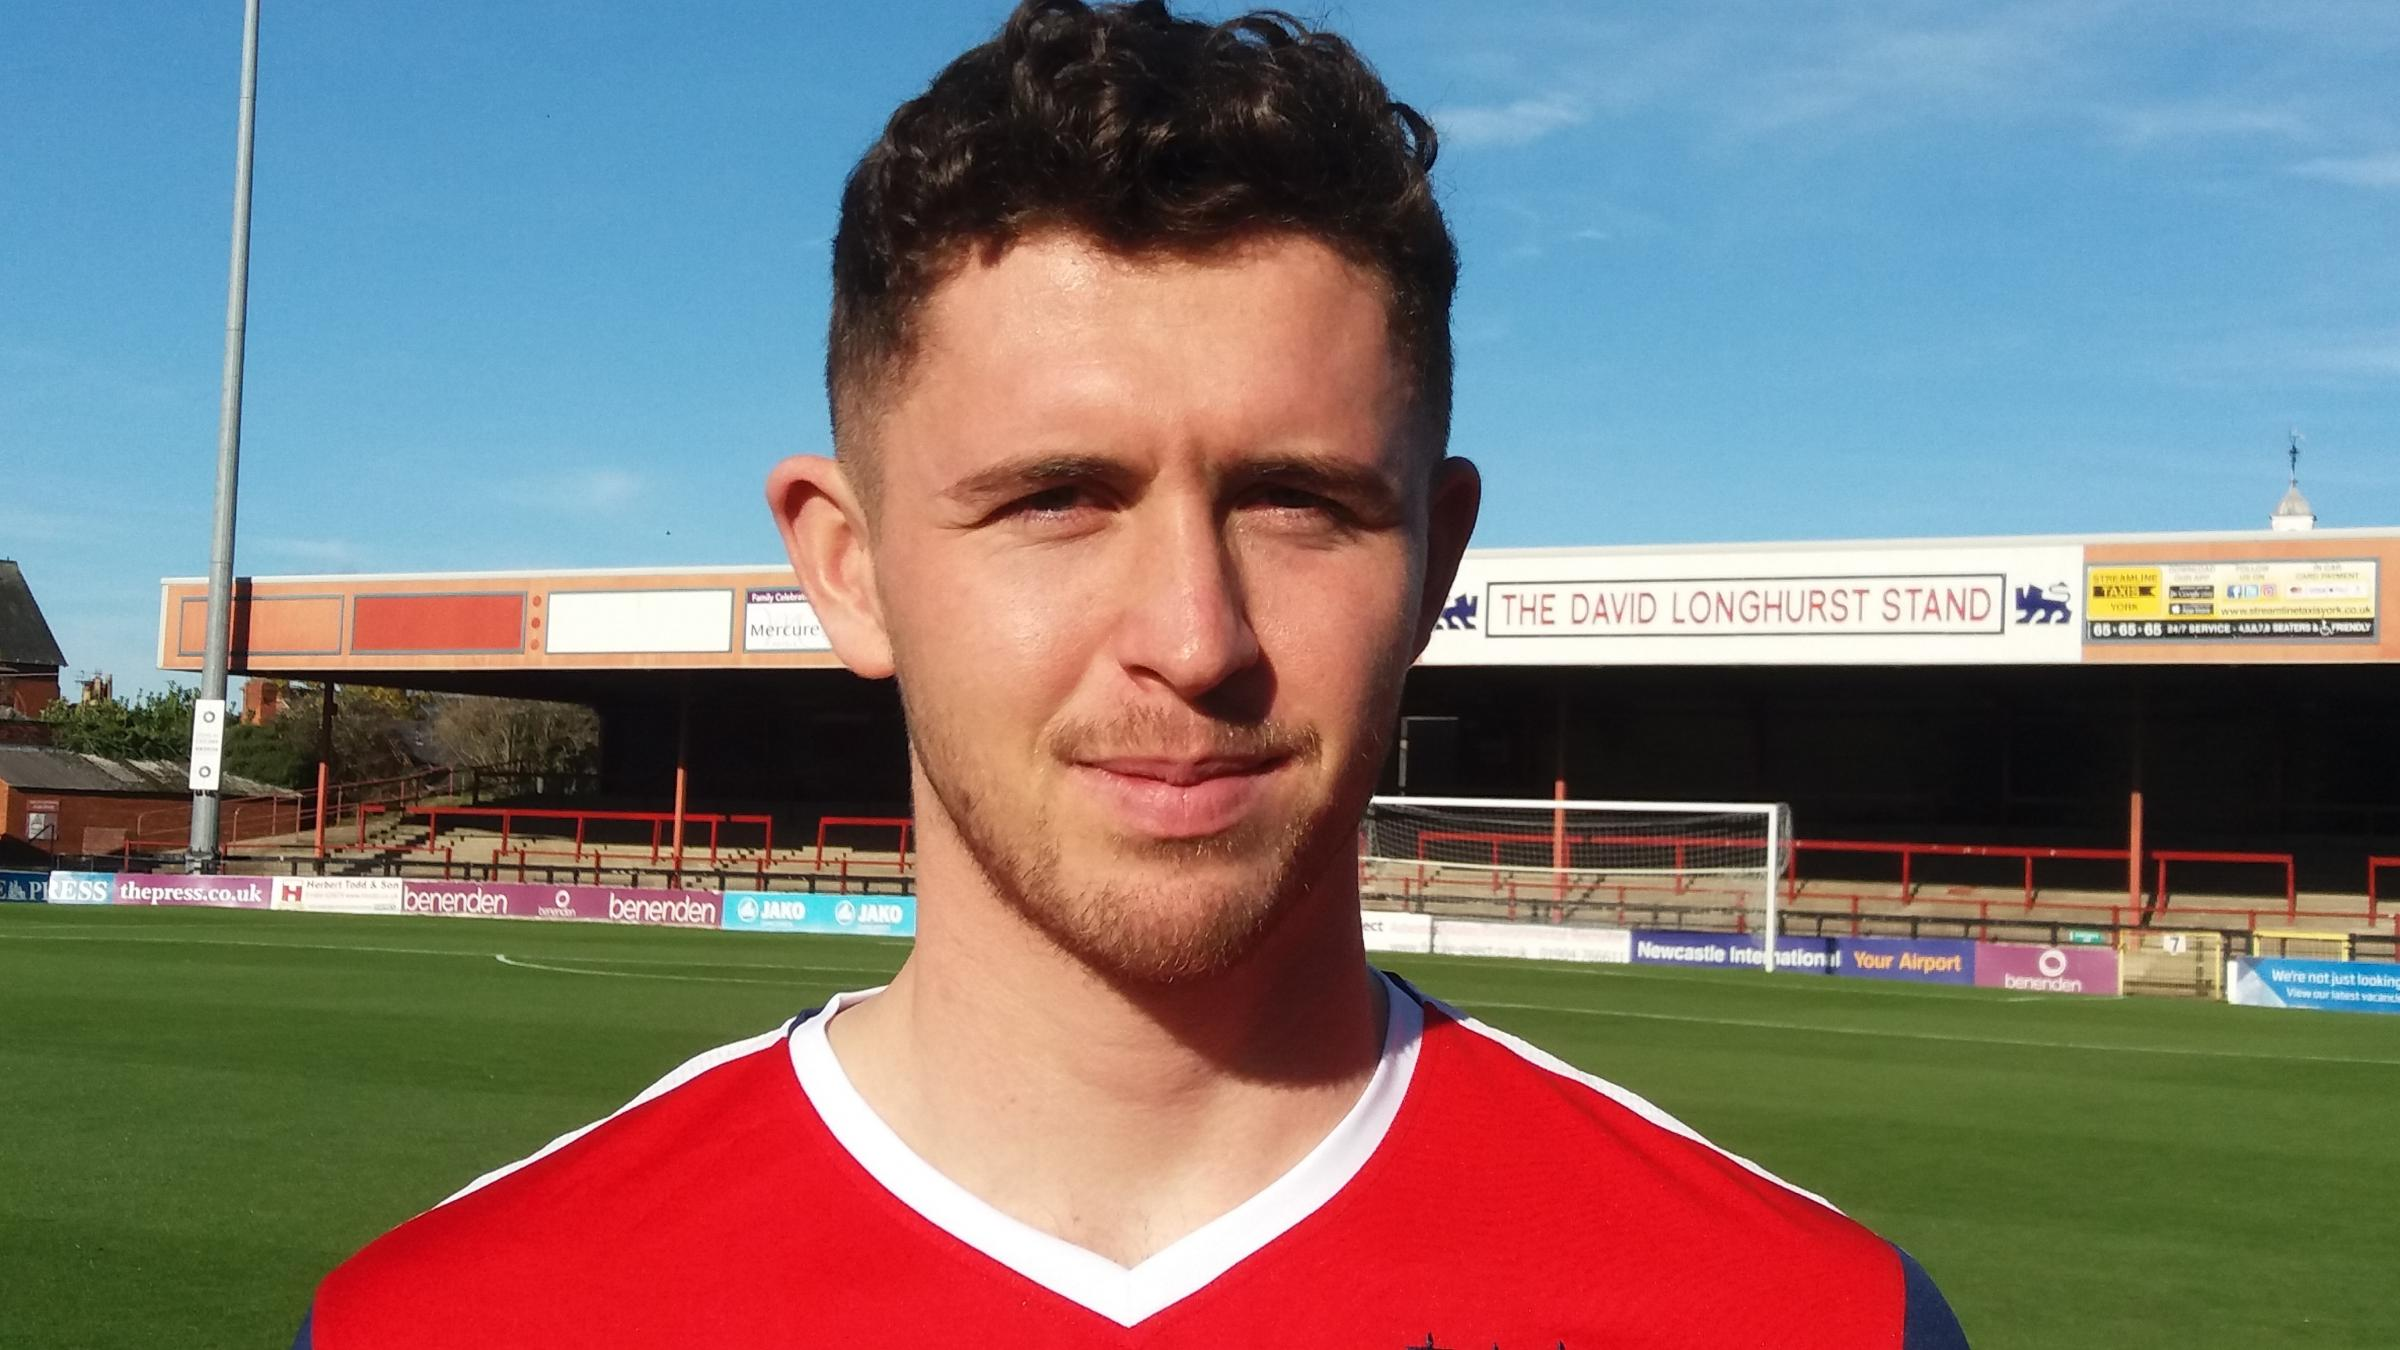 Defender Daniel Rowe pictured at Bootham Crescent after signing for York City